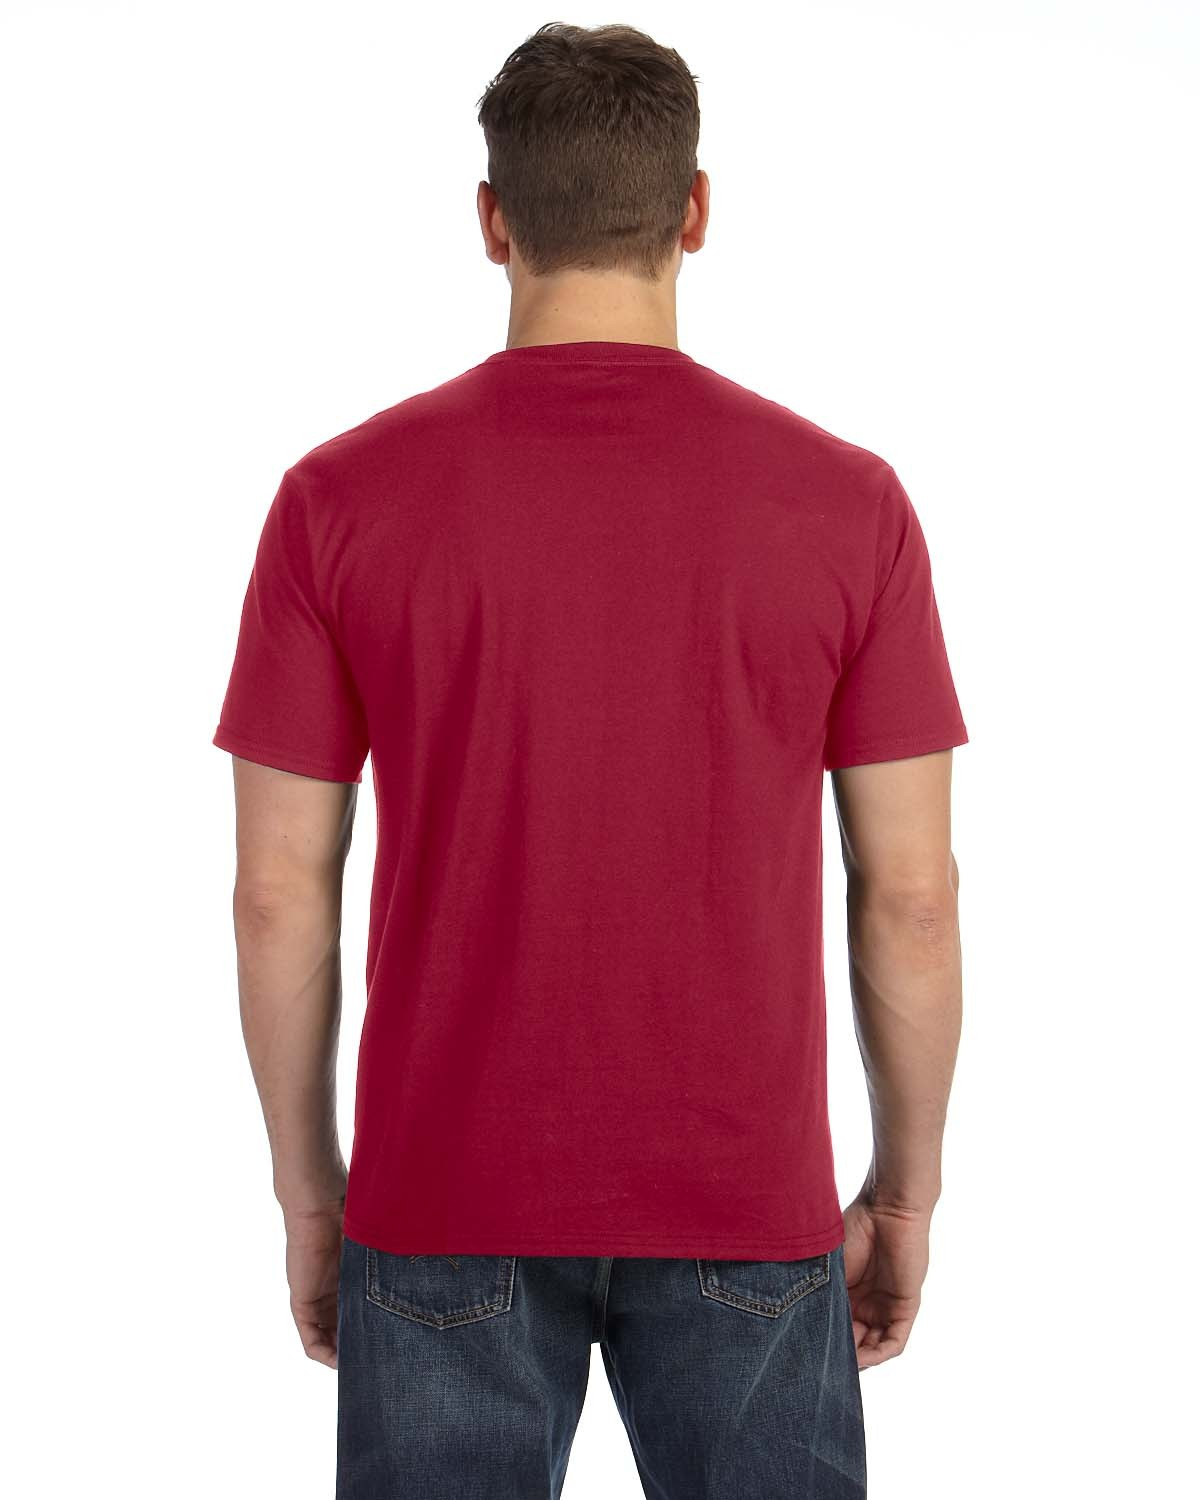 783AN Anvil INDEPENDENCE RED